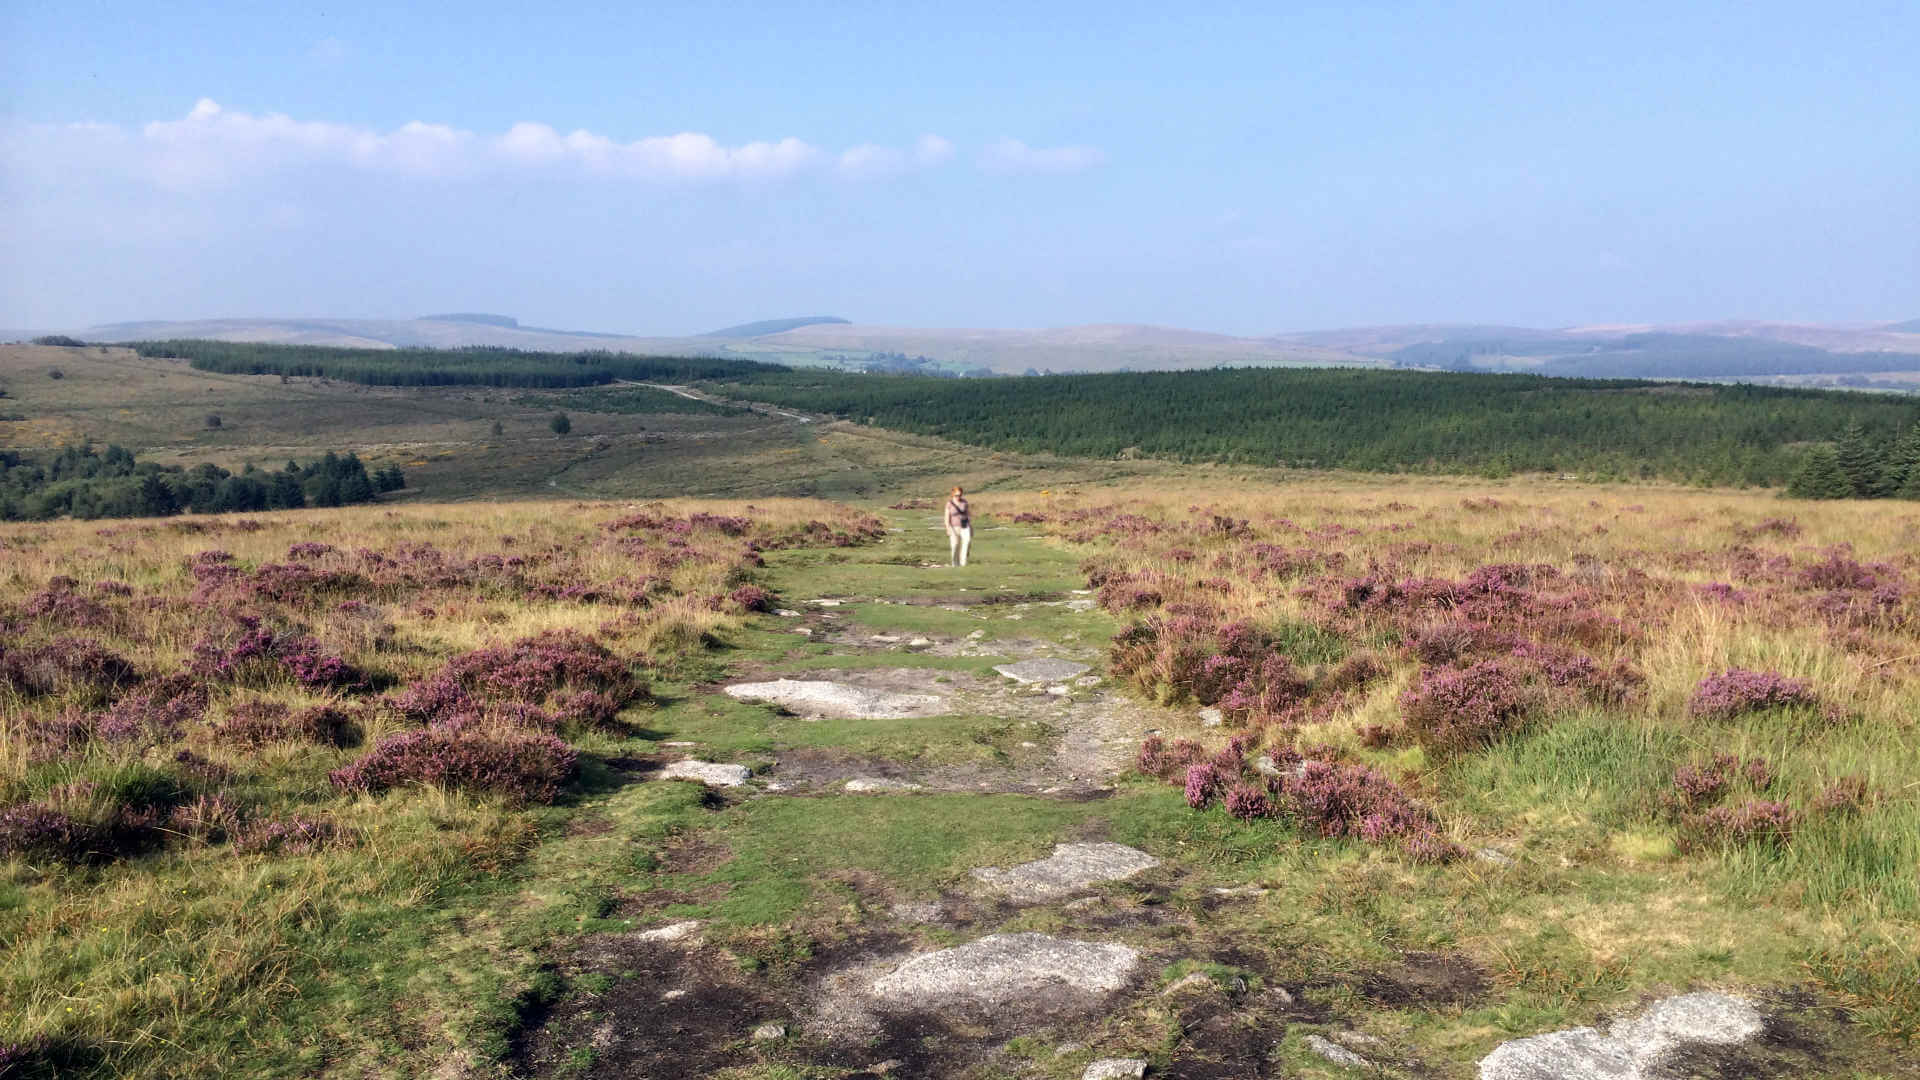 We highly recommend England's national parks: Dartmoor and Exmoor for their stunning views and serene walks.